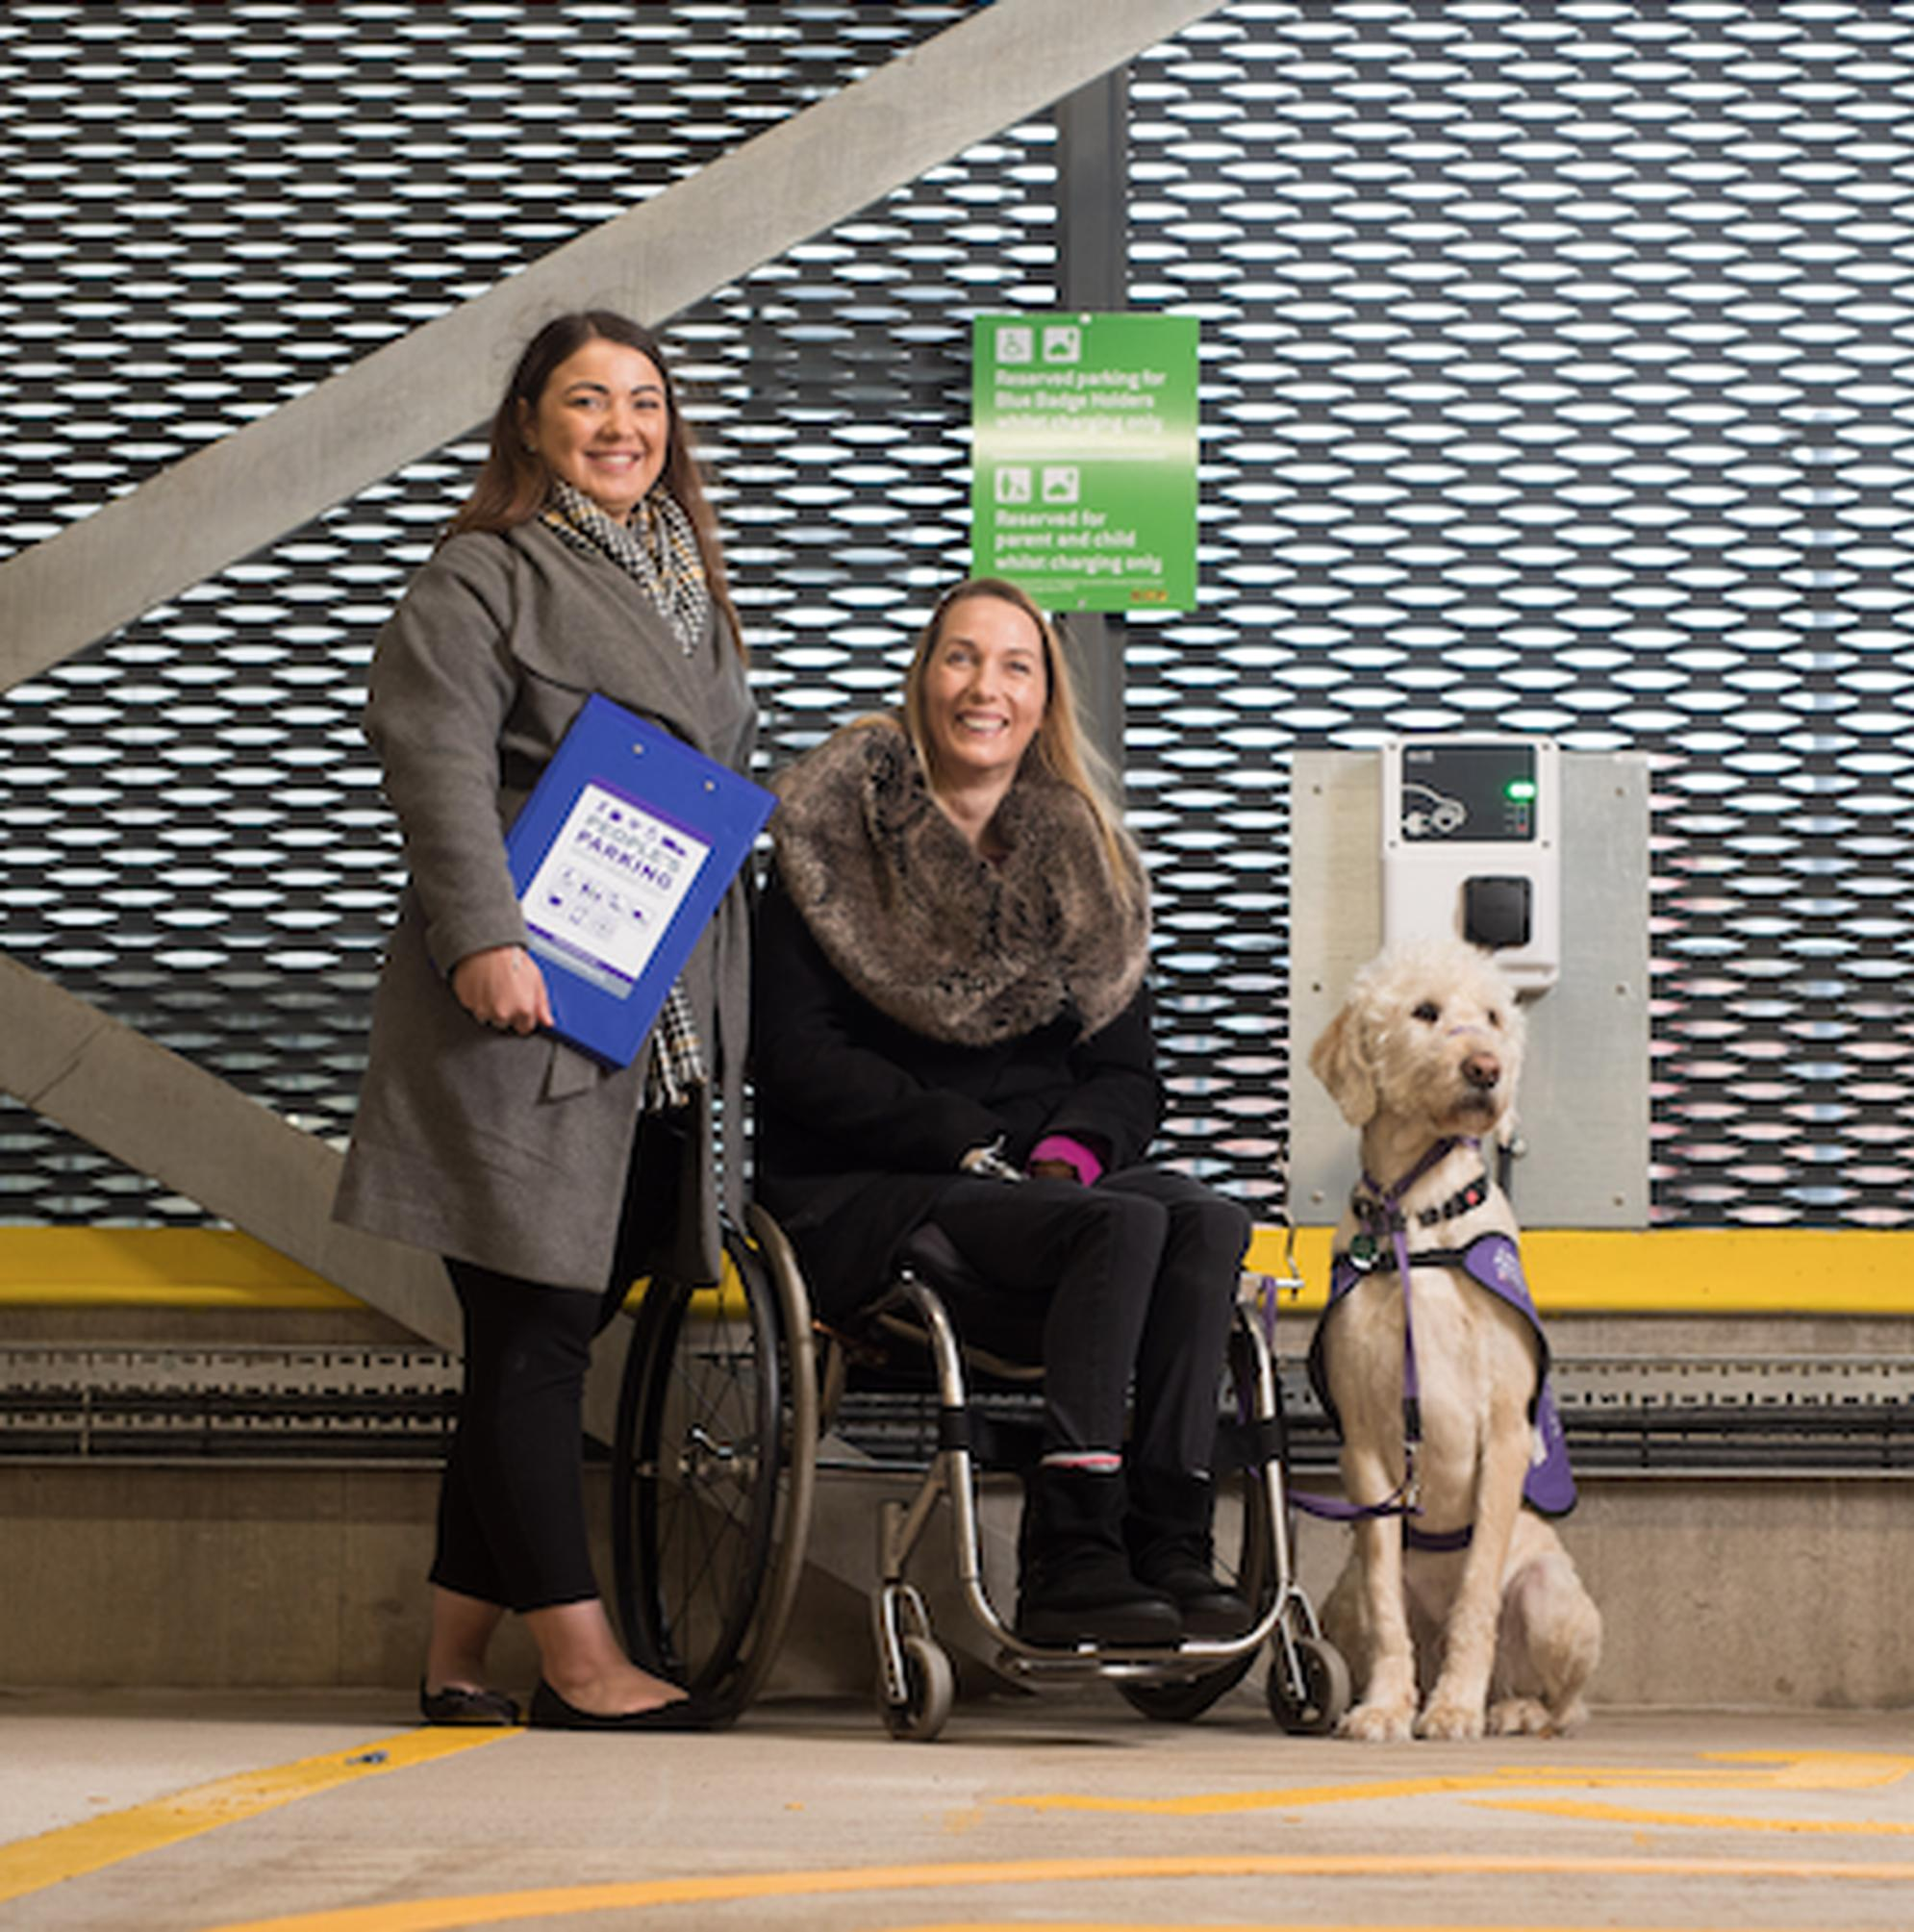 Libbie Bilyard and Helen Dolphin MBE, founders of the People's Parking accreditation scheme, with Fairport the assistance dog